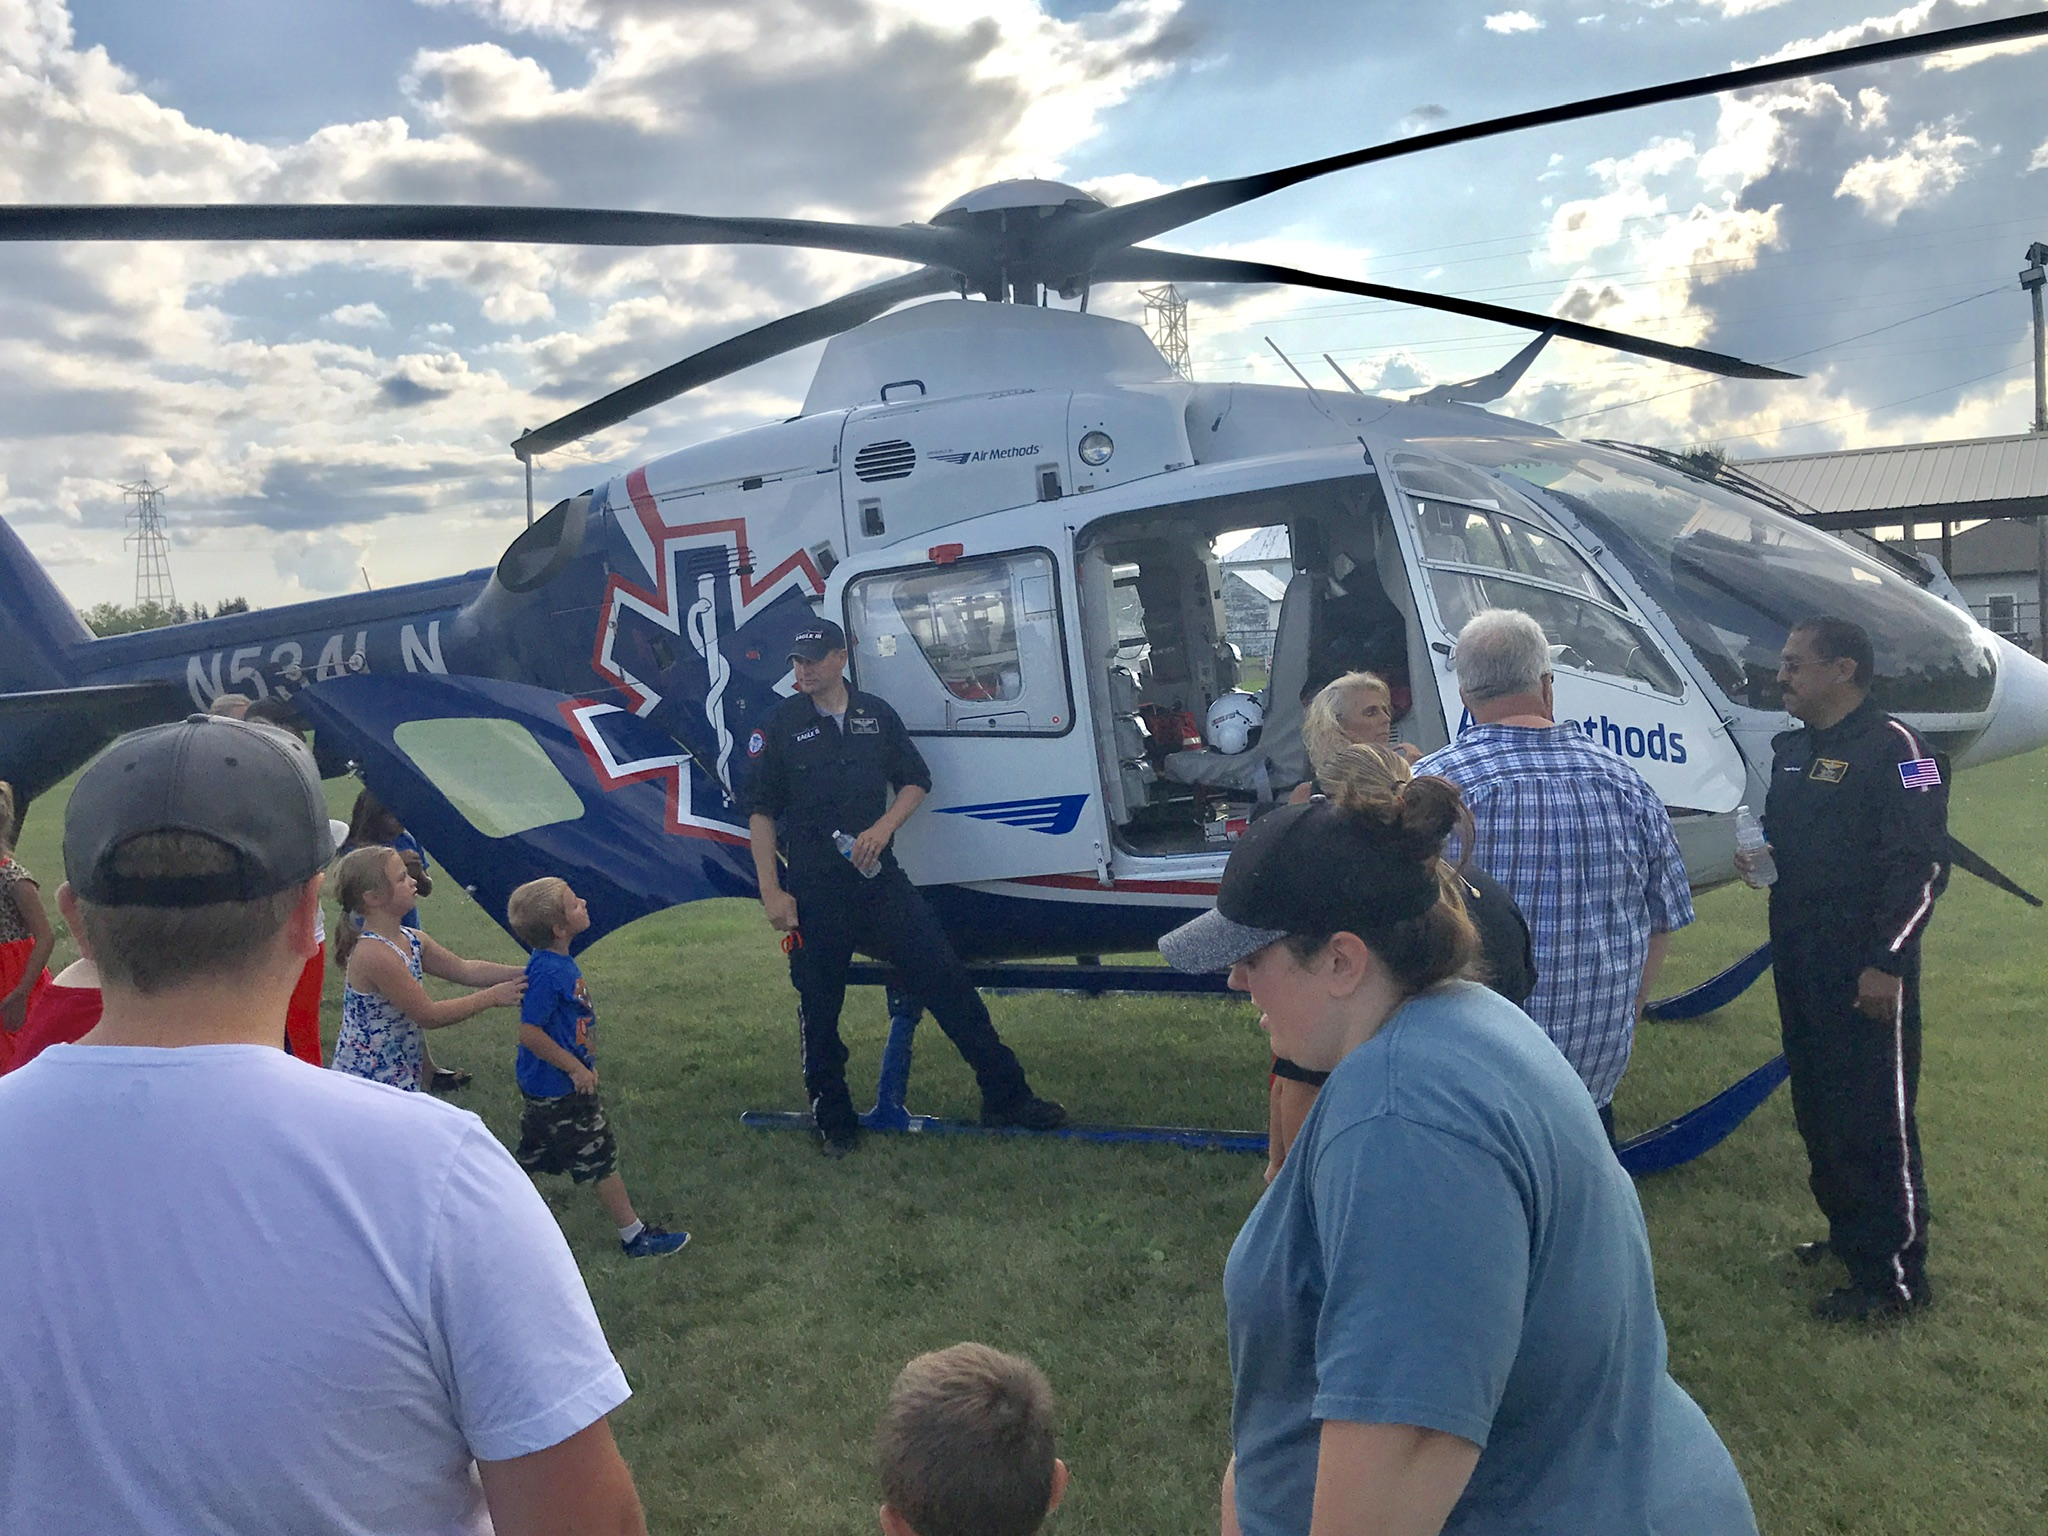 Eagle III crew explains the helicopter's functions to visitors.